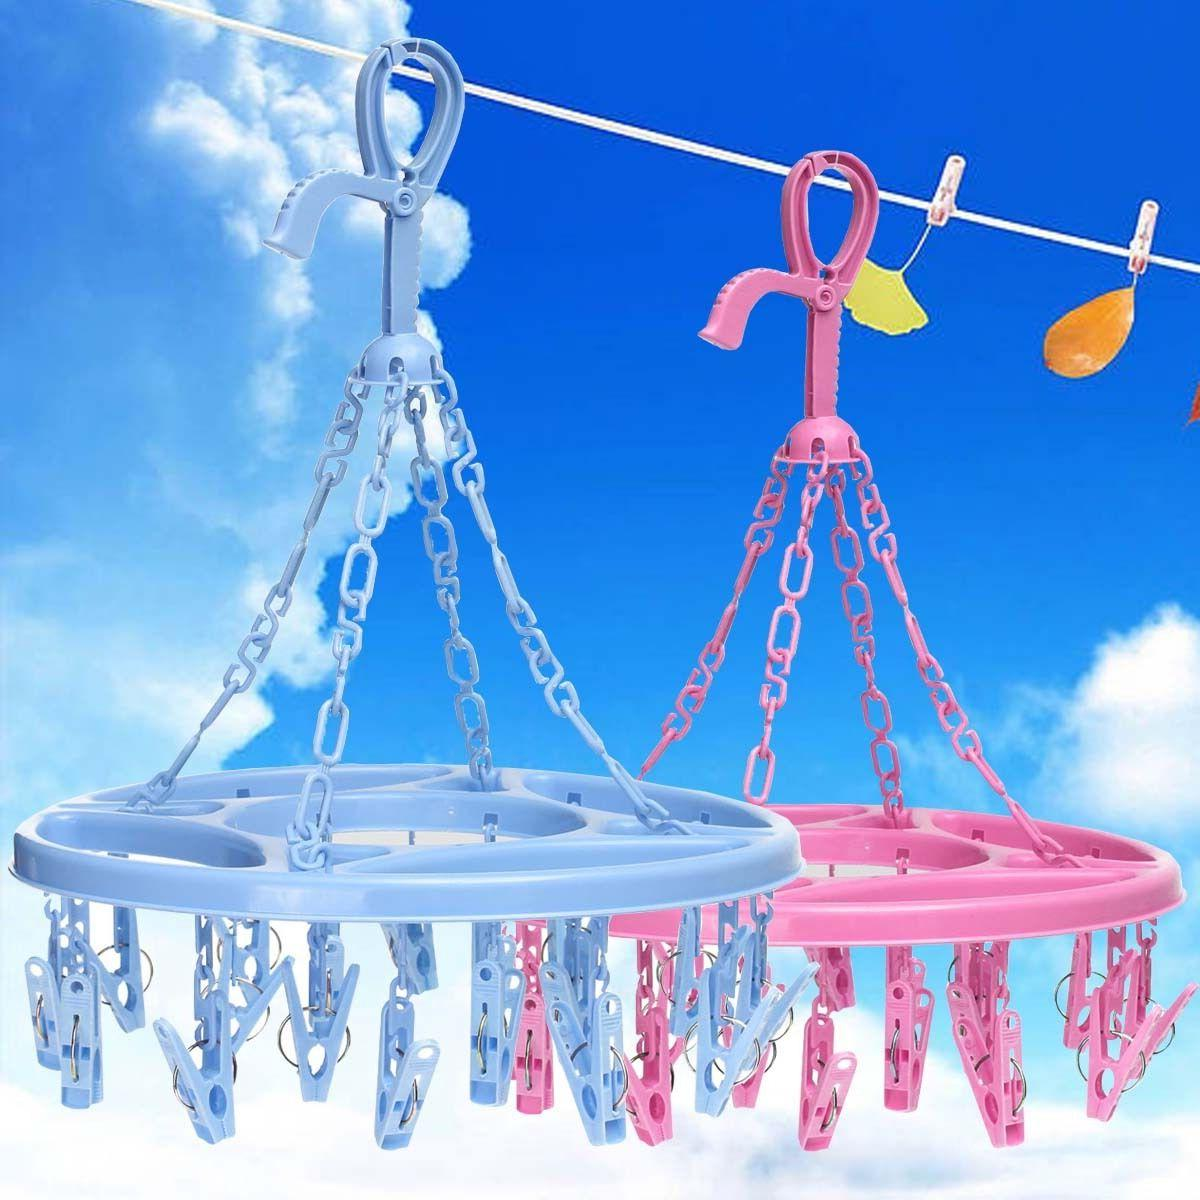 18 Pins Plastic Drying Hanger Rack Laundry Hanging Sock Clot